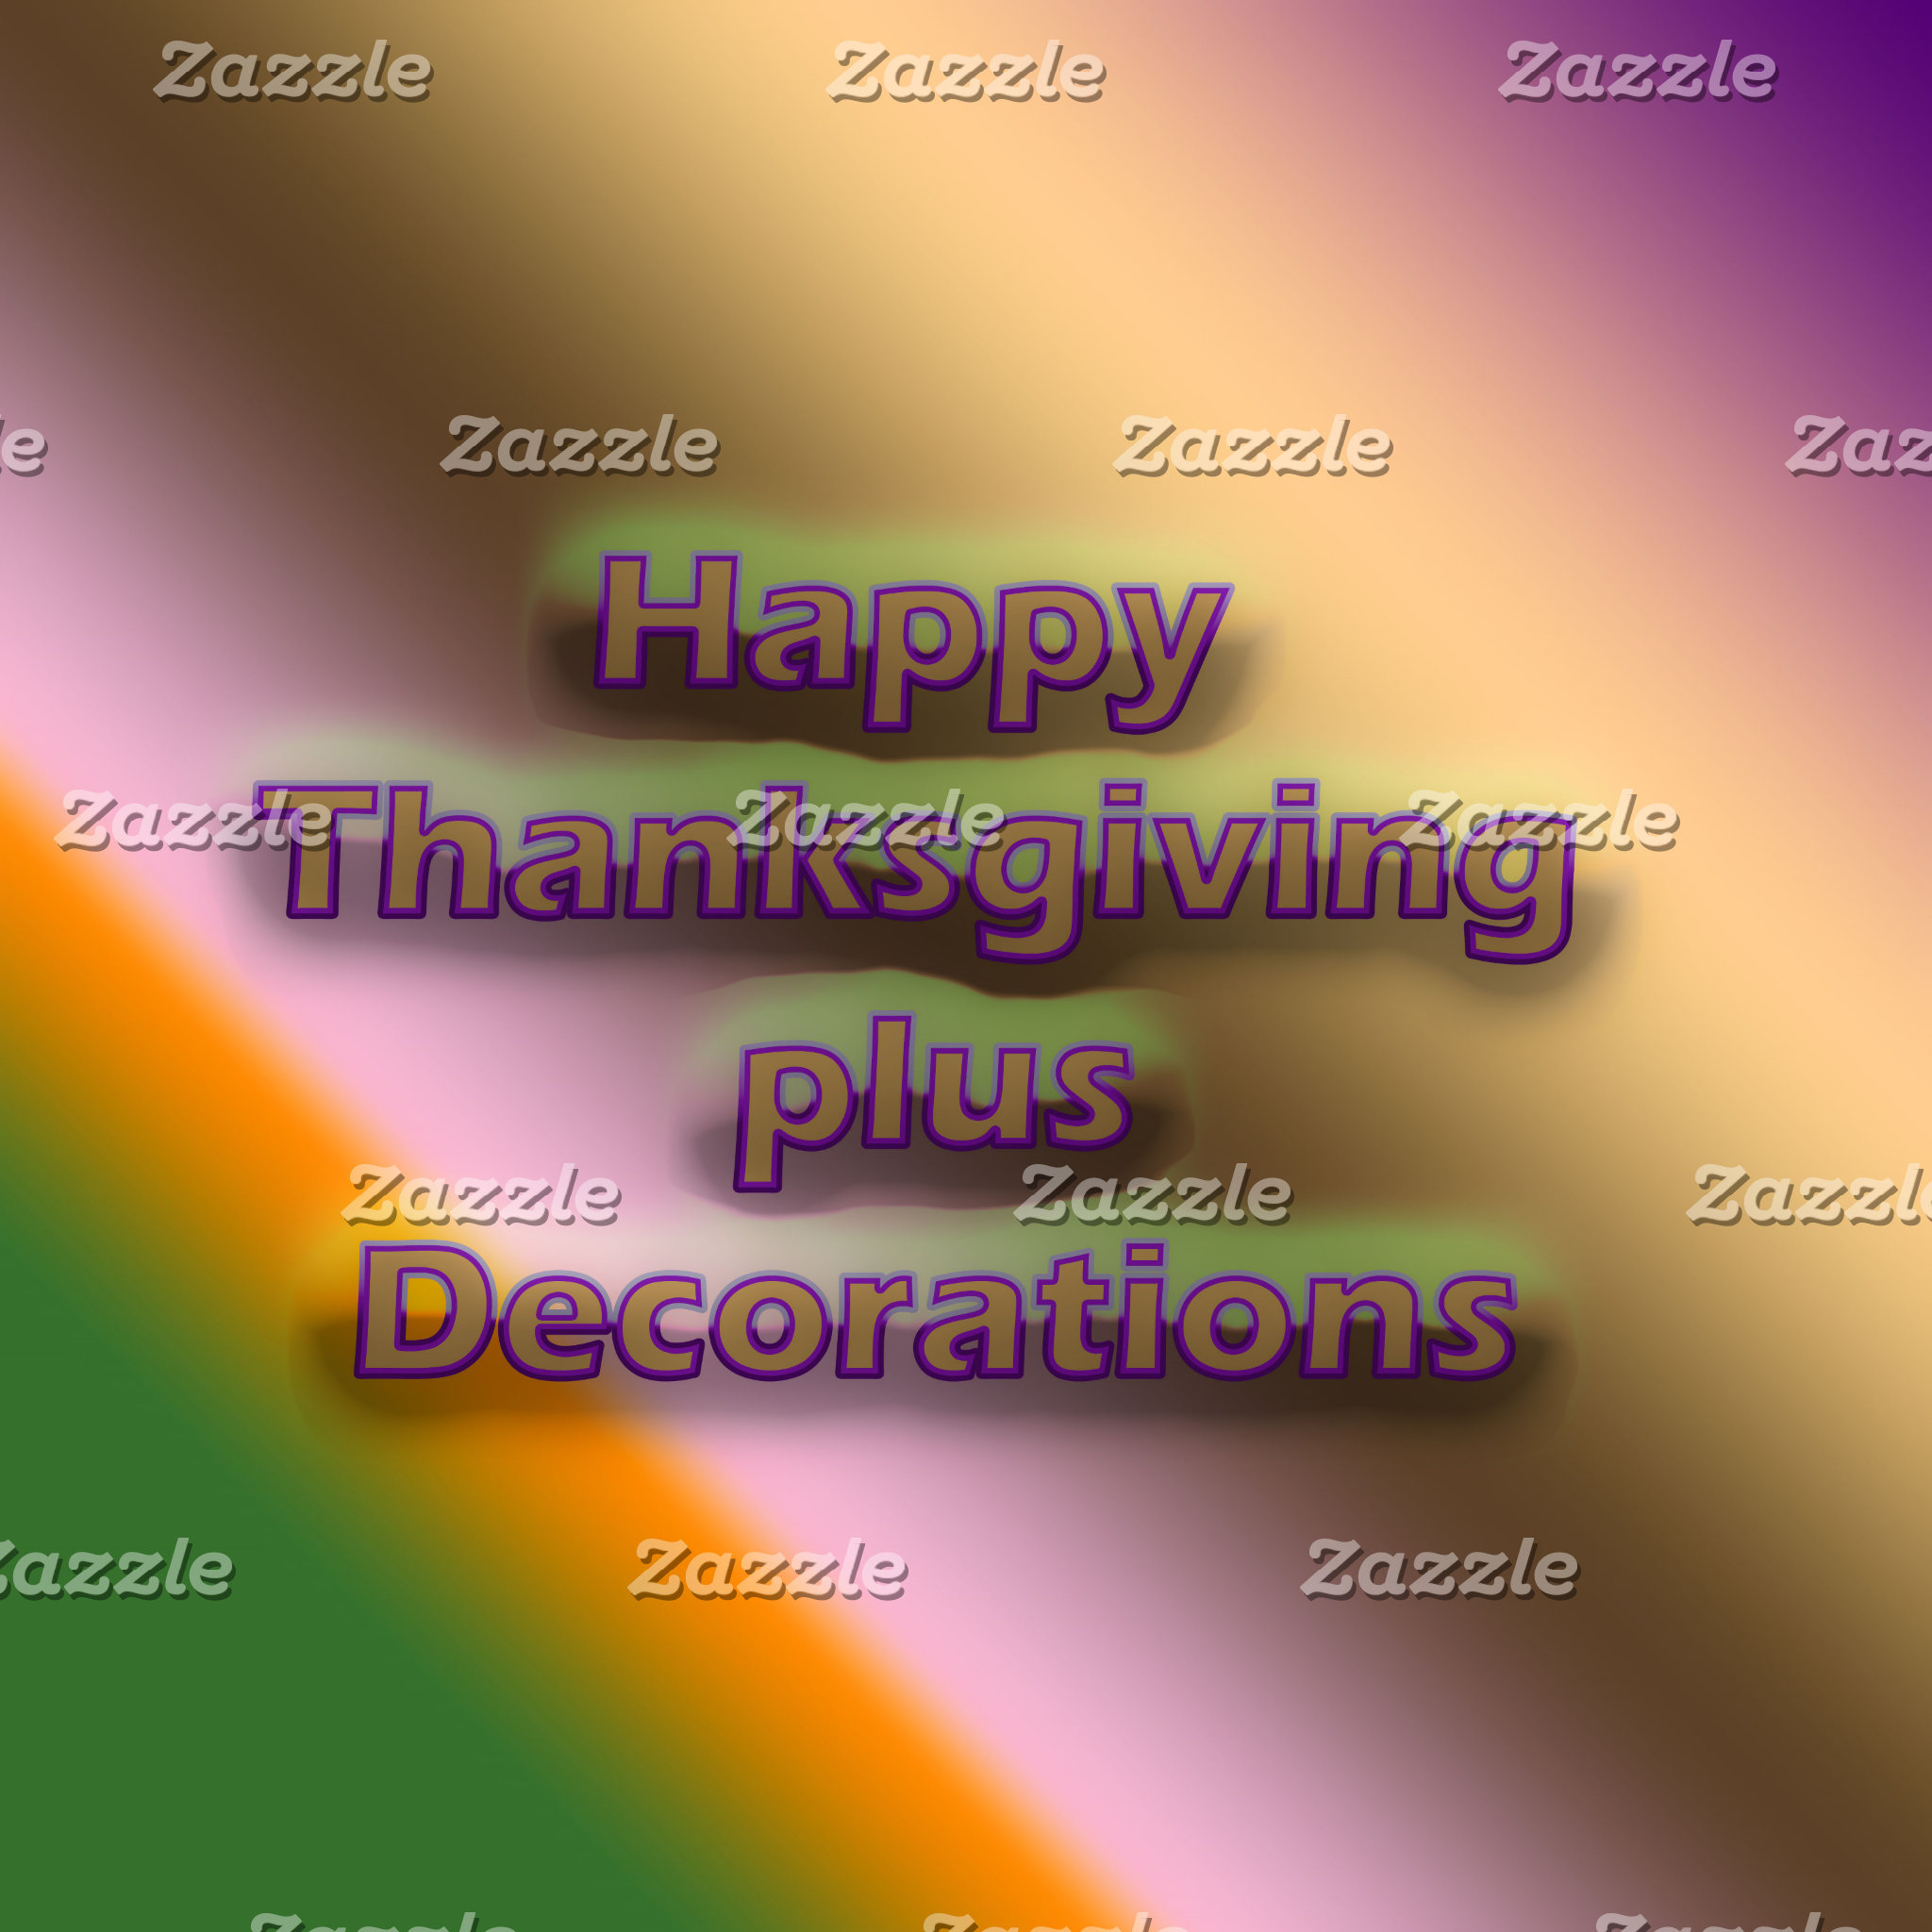 Happy Thanksgiving plus Decorations